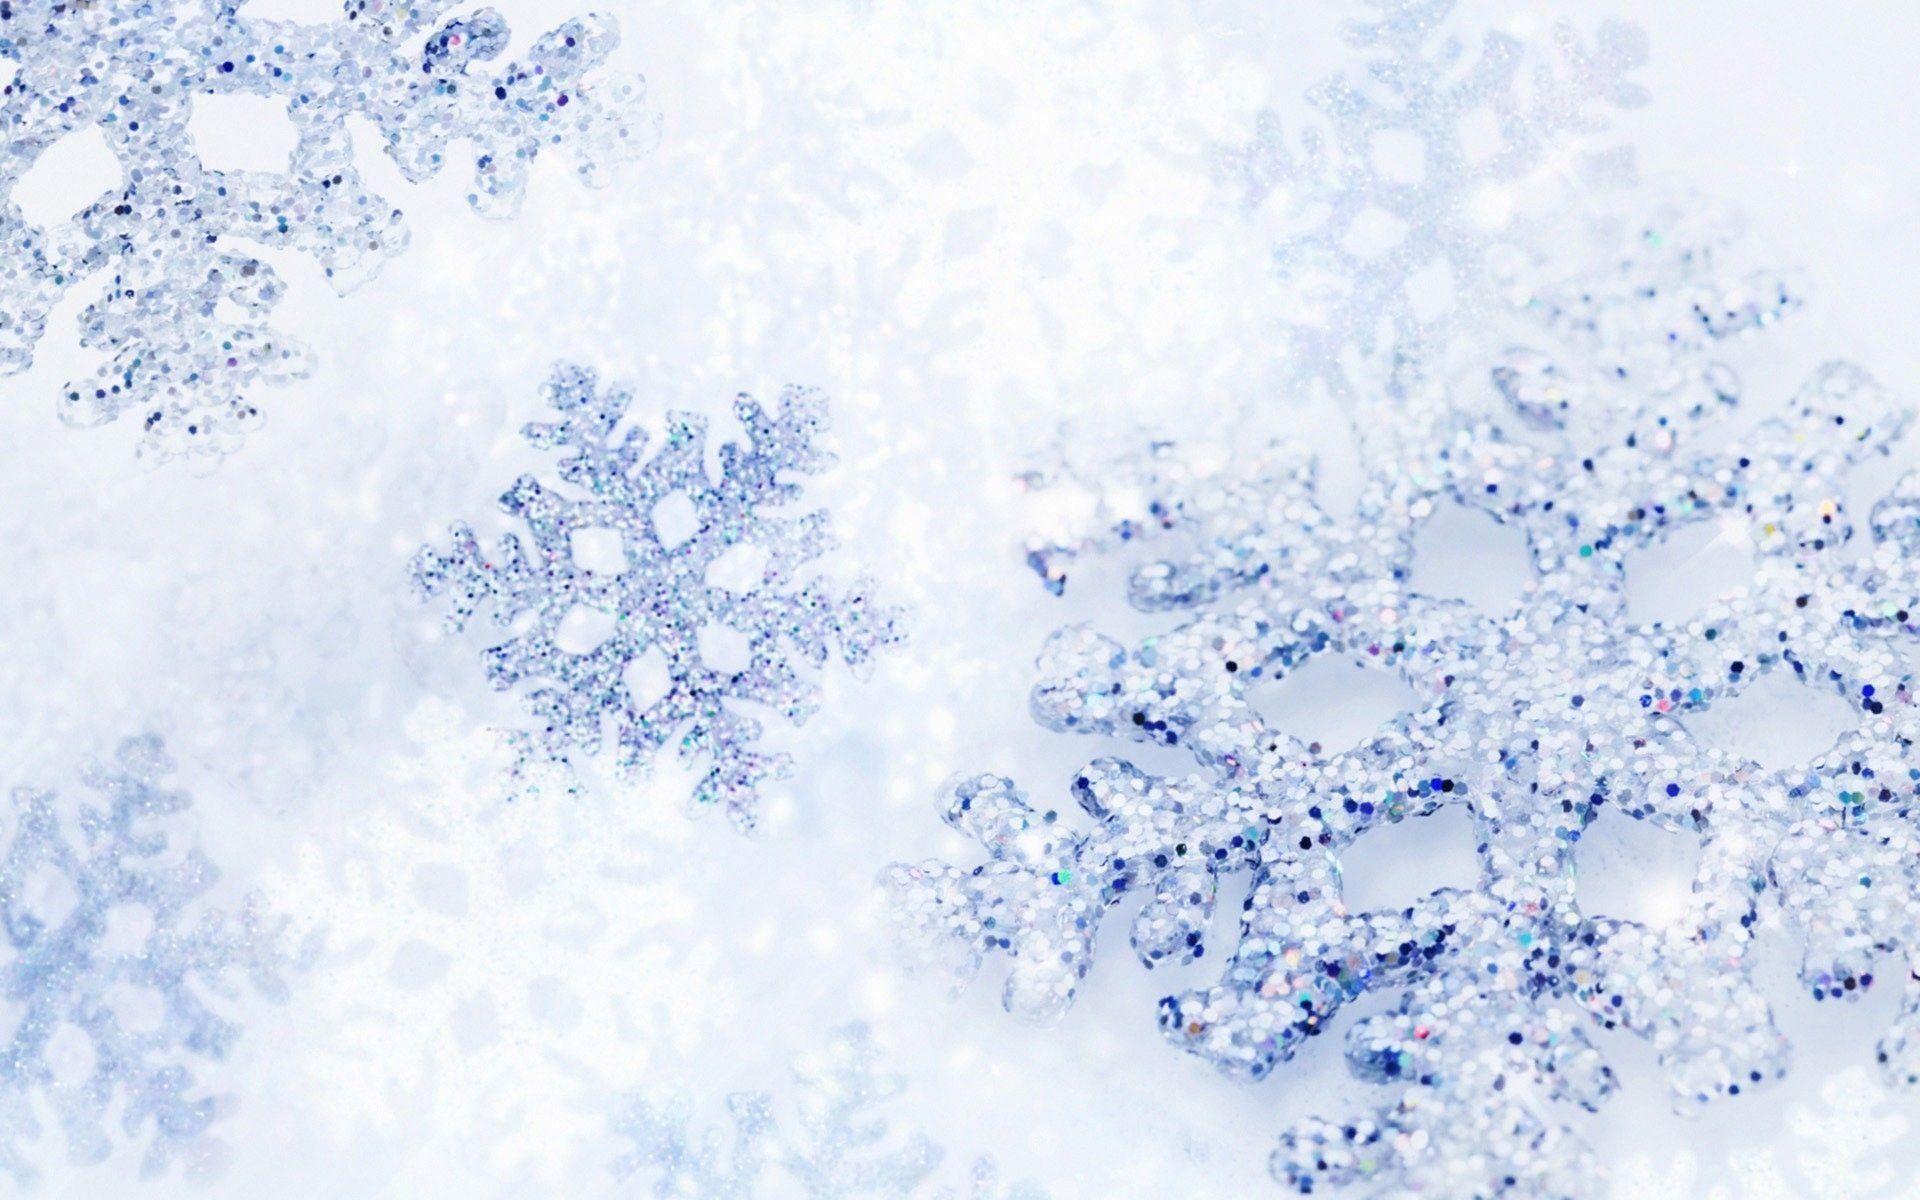 snow christmas wallpaper (59+ images)